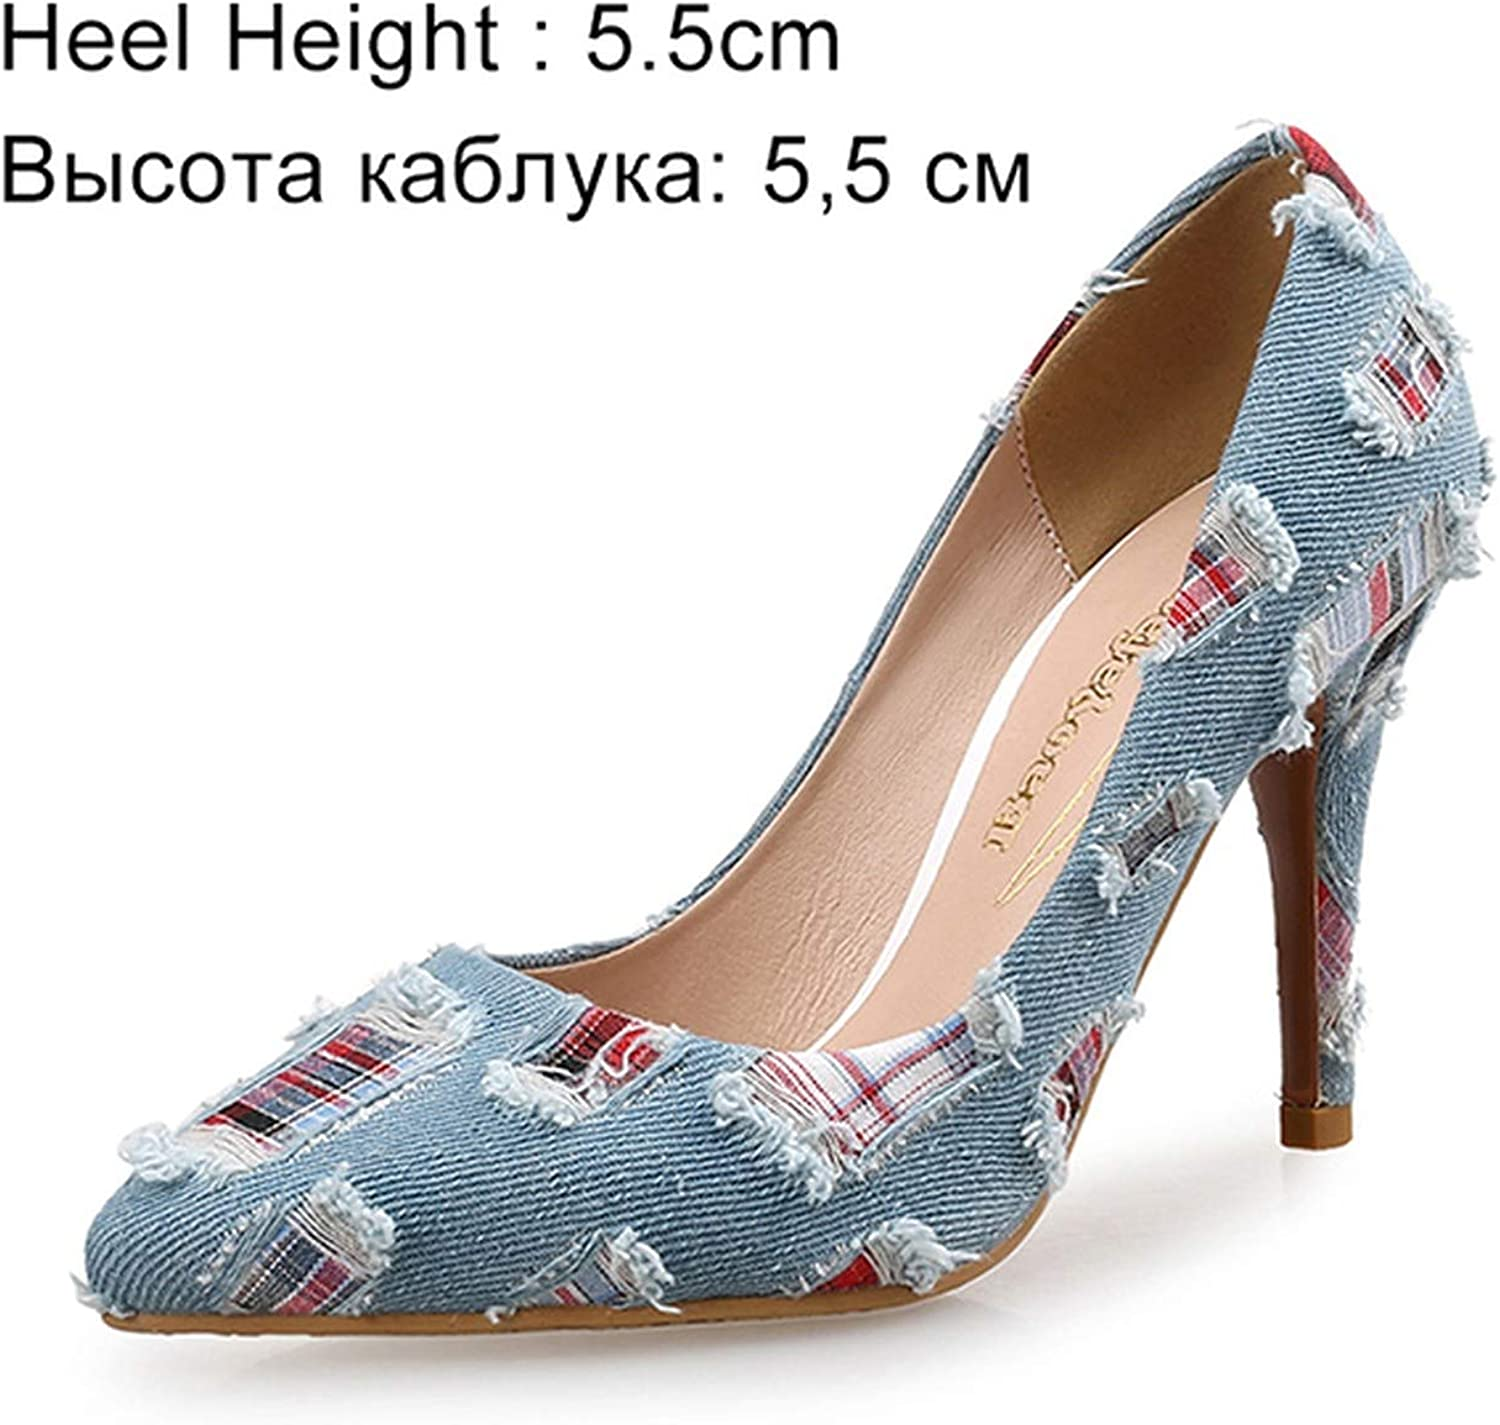 I Need-You Women Pumps High Heels shoes Female Casual Thin Heel Denim Ladies shoes Fashion Slip On Pointed Toe Party shoes Heels Plus Size